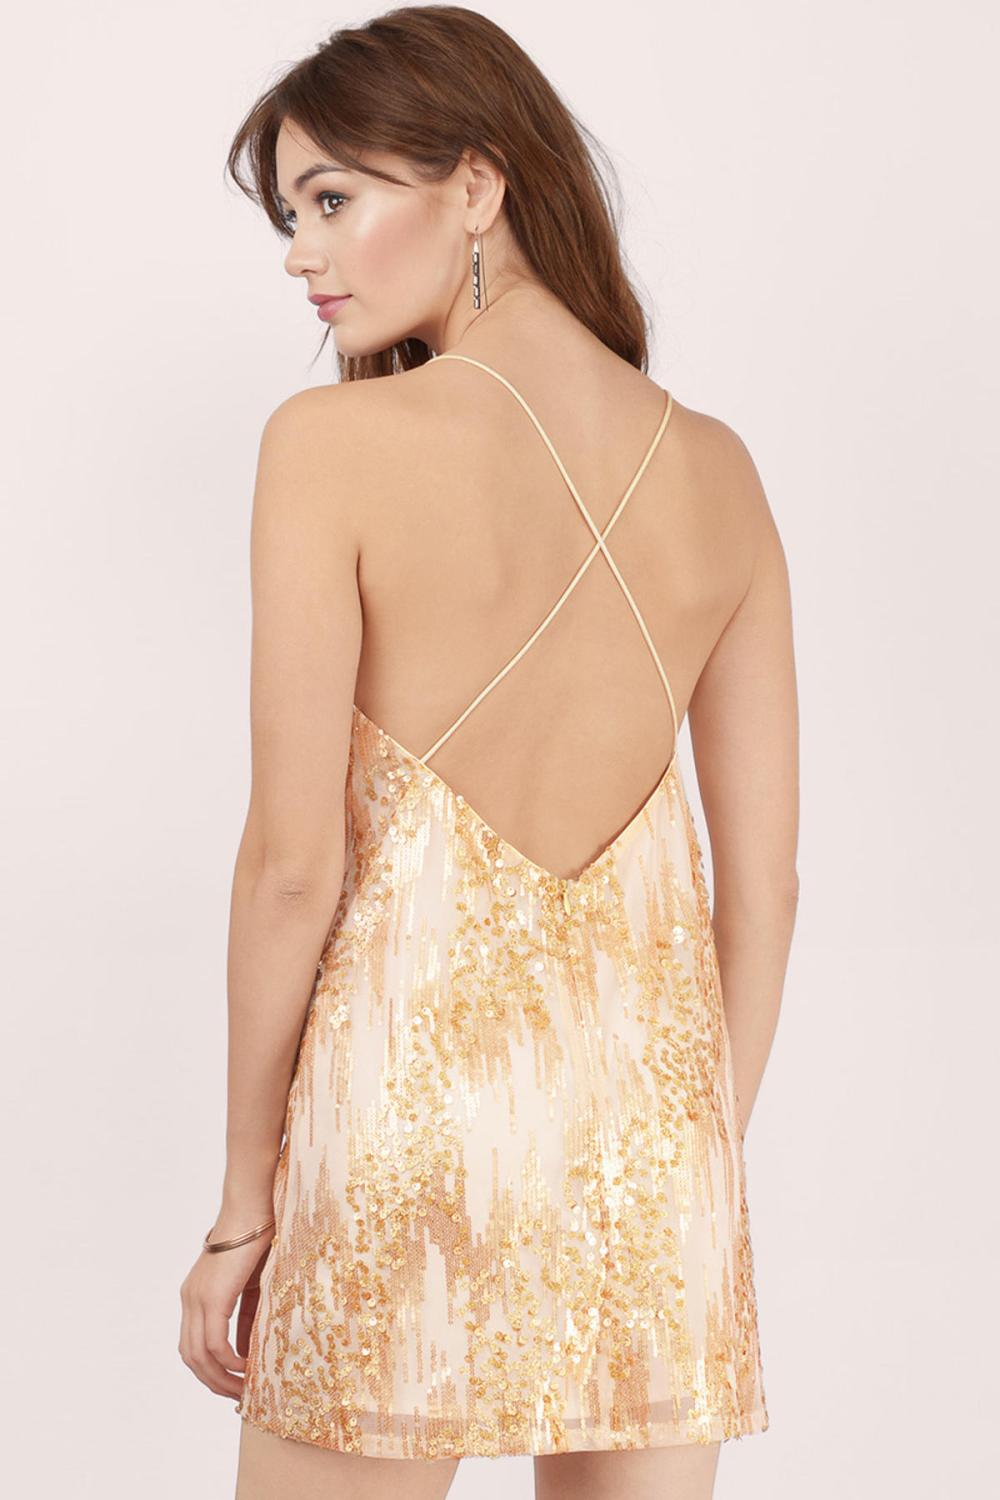 gold-city-lights-sequin-shift-dress2x-2